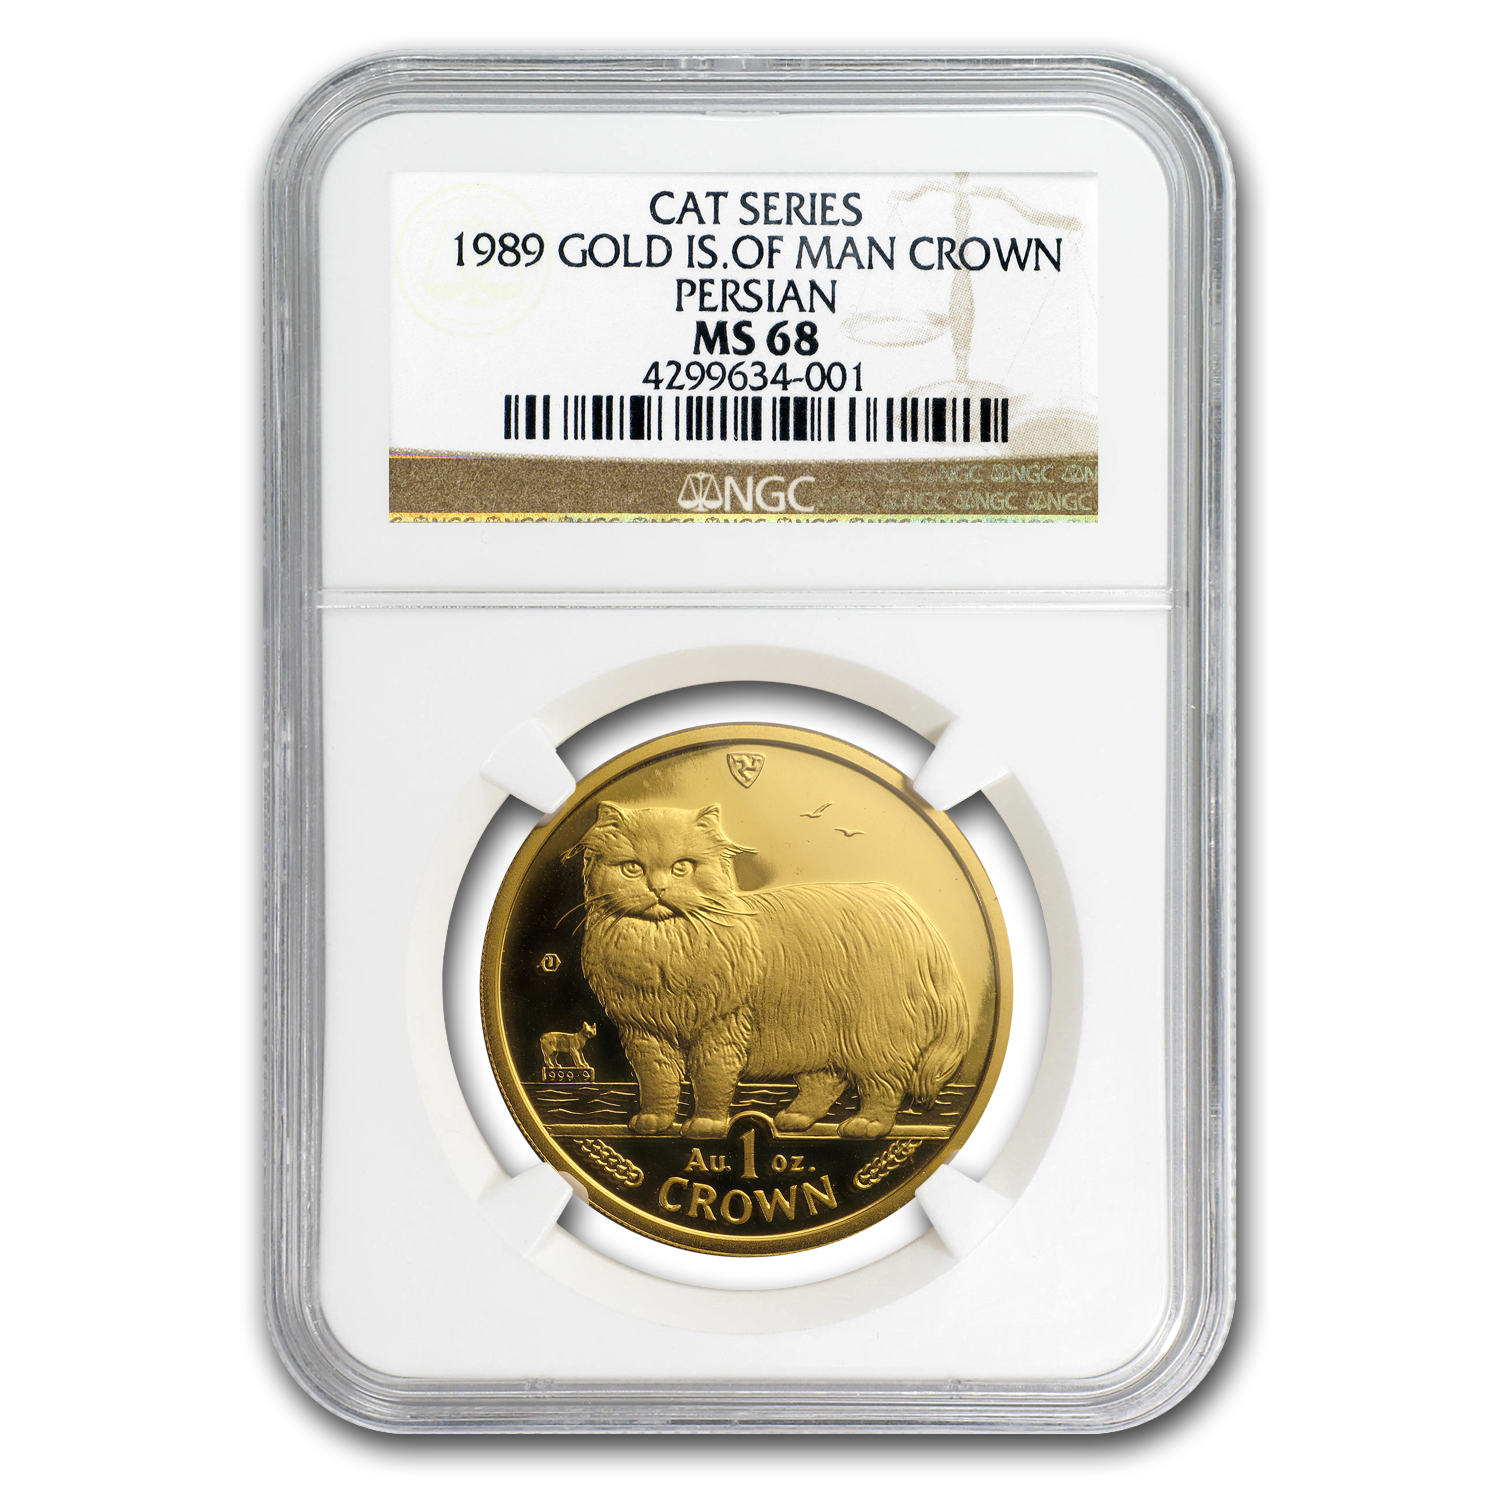 1989 Isle of Man 1 oz Gold Persian Cat MS-68 NGC